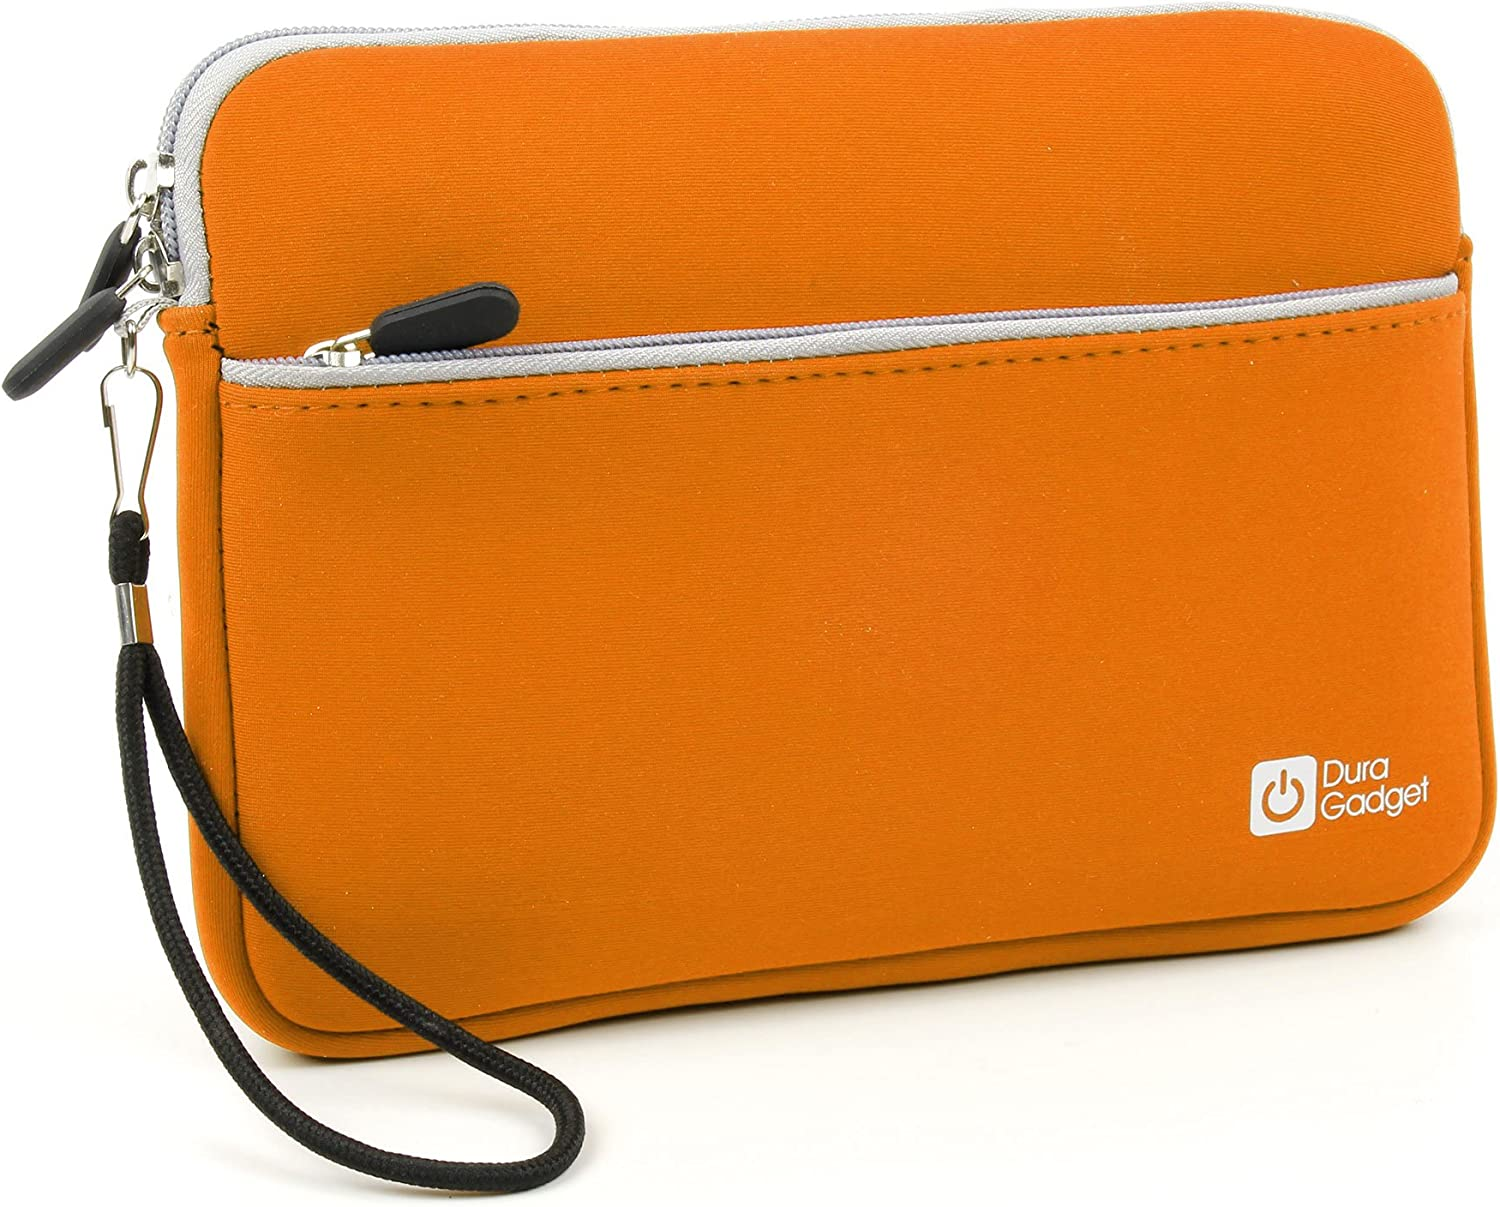 DURAGADGET Soft Orange Neoprene Cover - Compatible with Acer Iconia W3 | Iconia Tab A1-810 | Iconia Tab A210 | Iconia Tab A211 & Iconia Tab A200